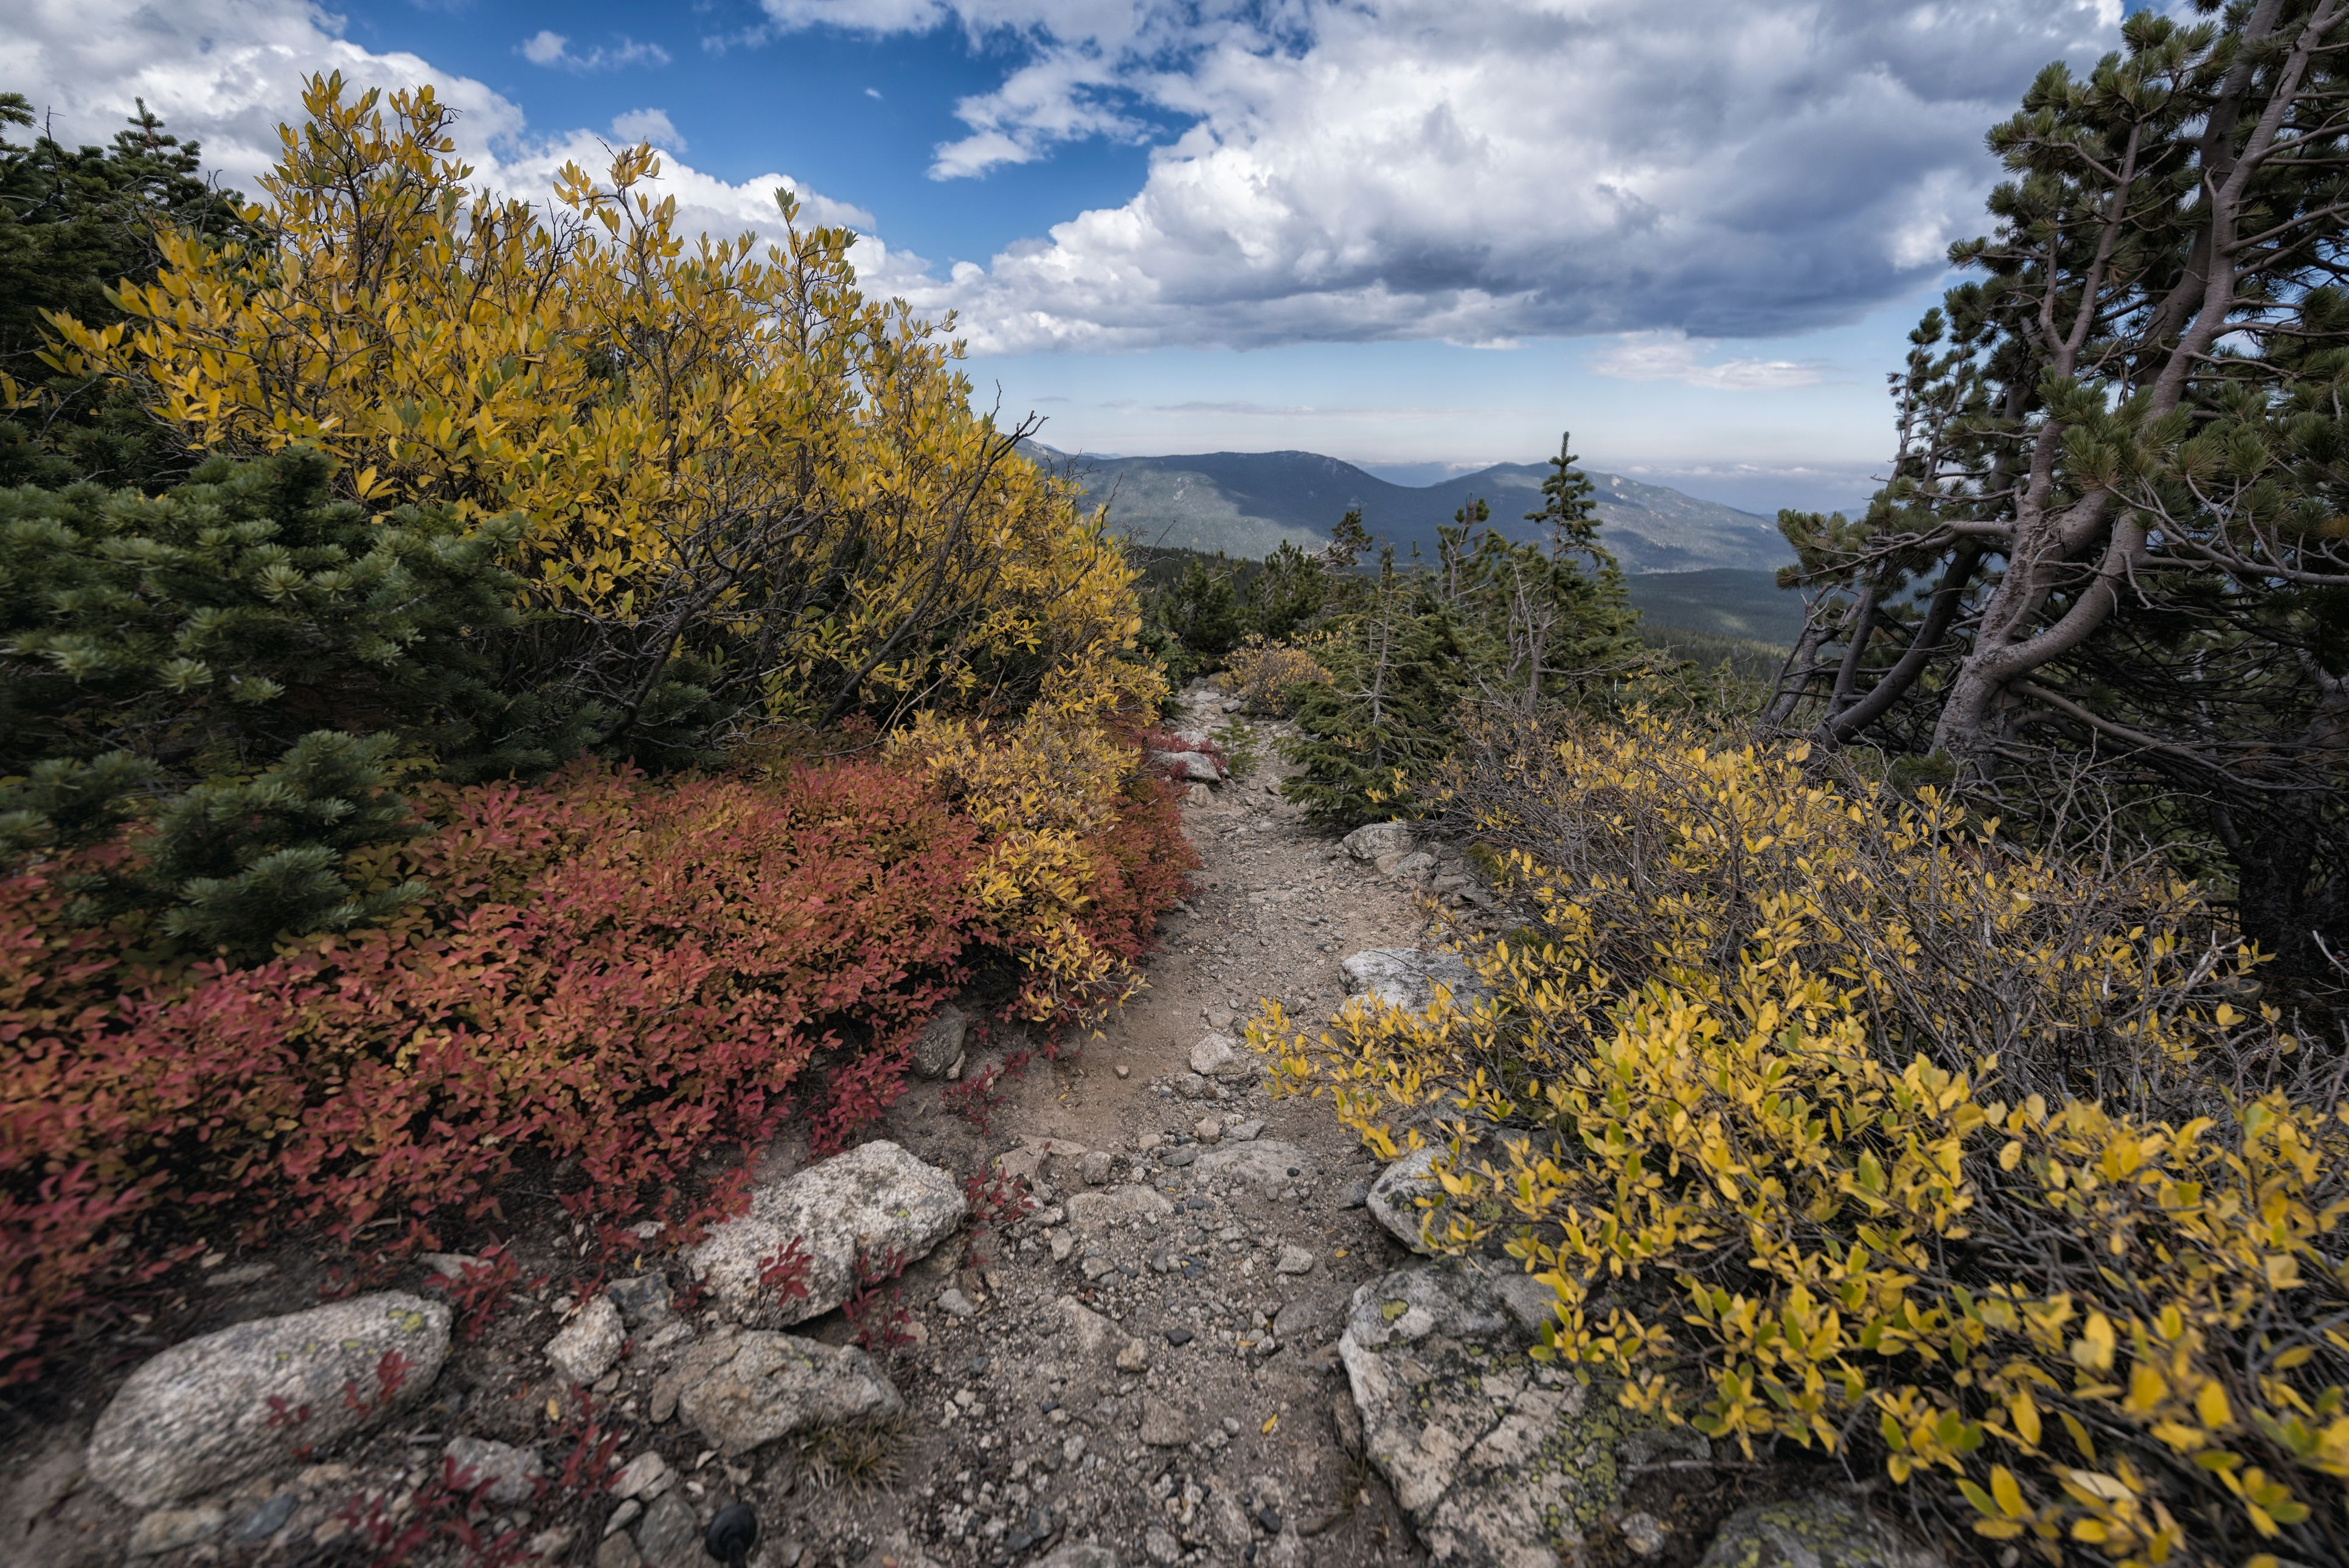 Autumn leaves in mountain landscape